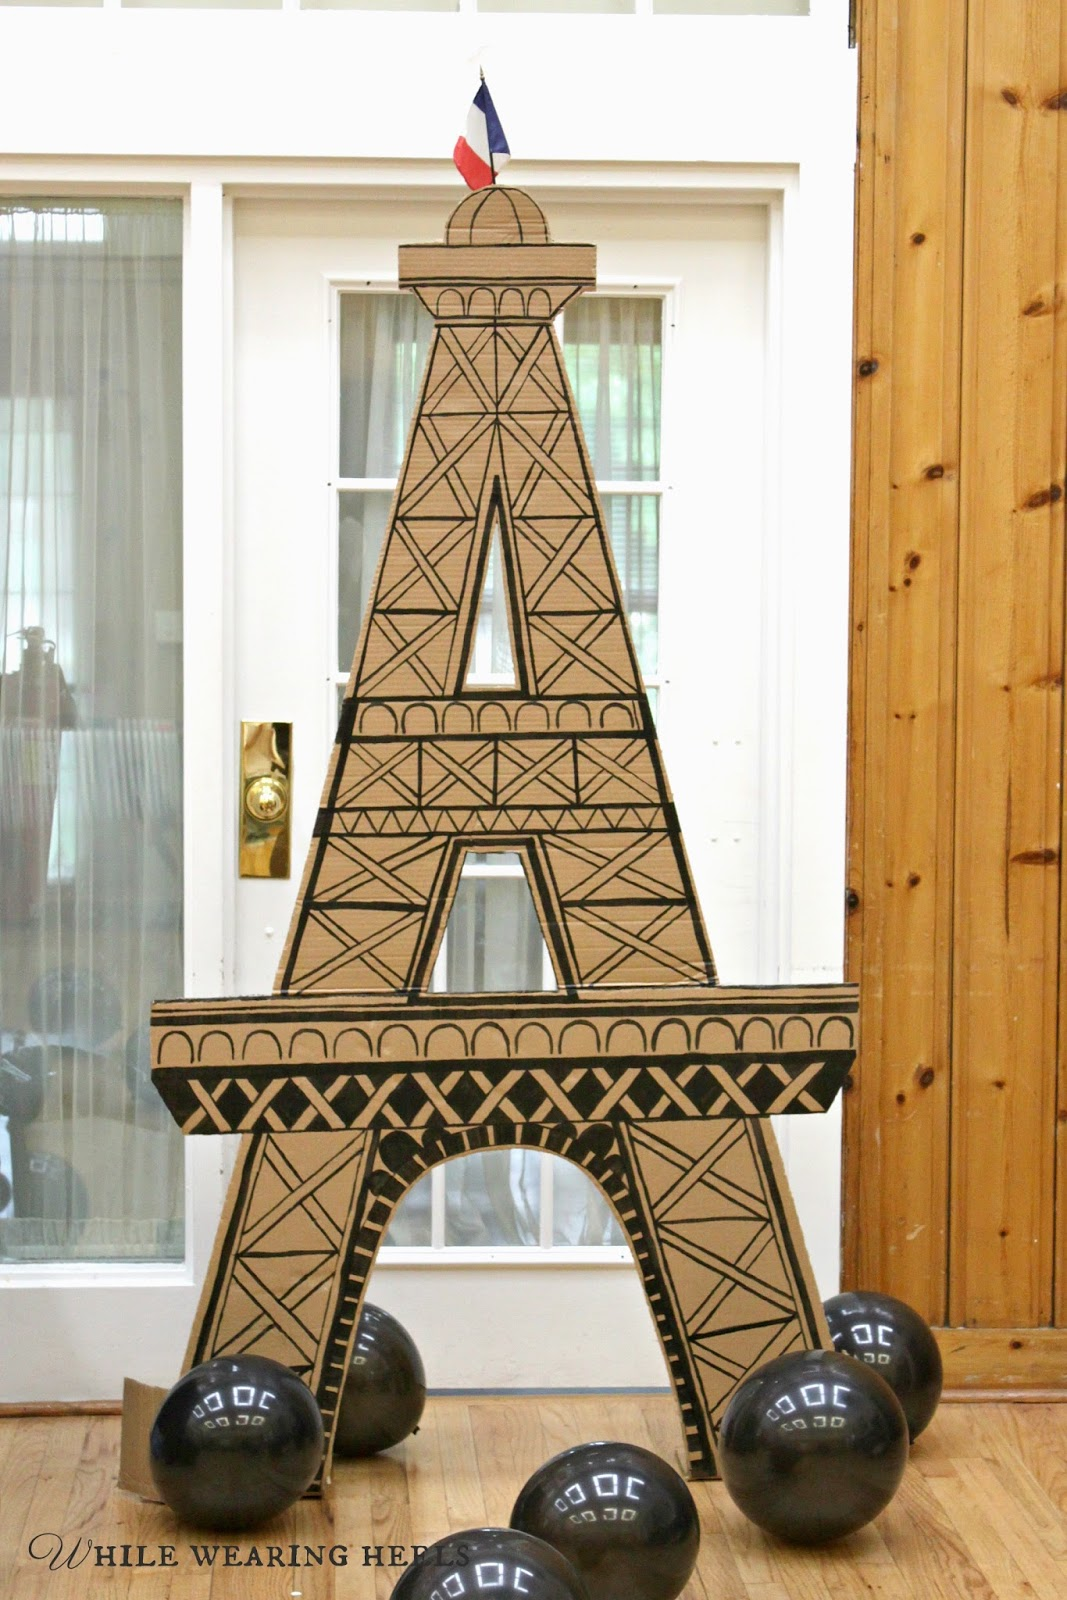 i have plenty of small eiffel tower statues but when i think eiffel tower decorations in my opinion bigger is better